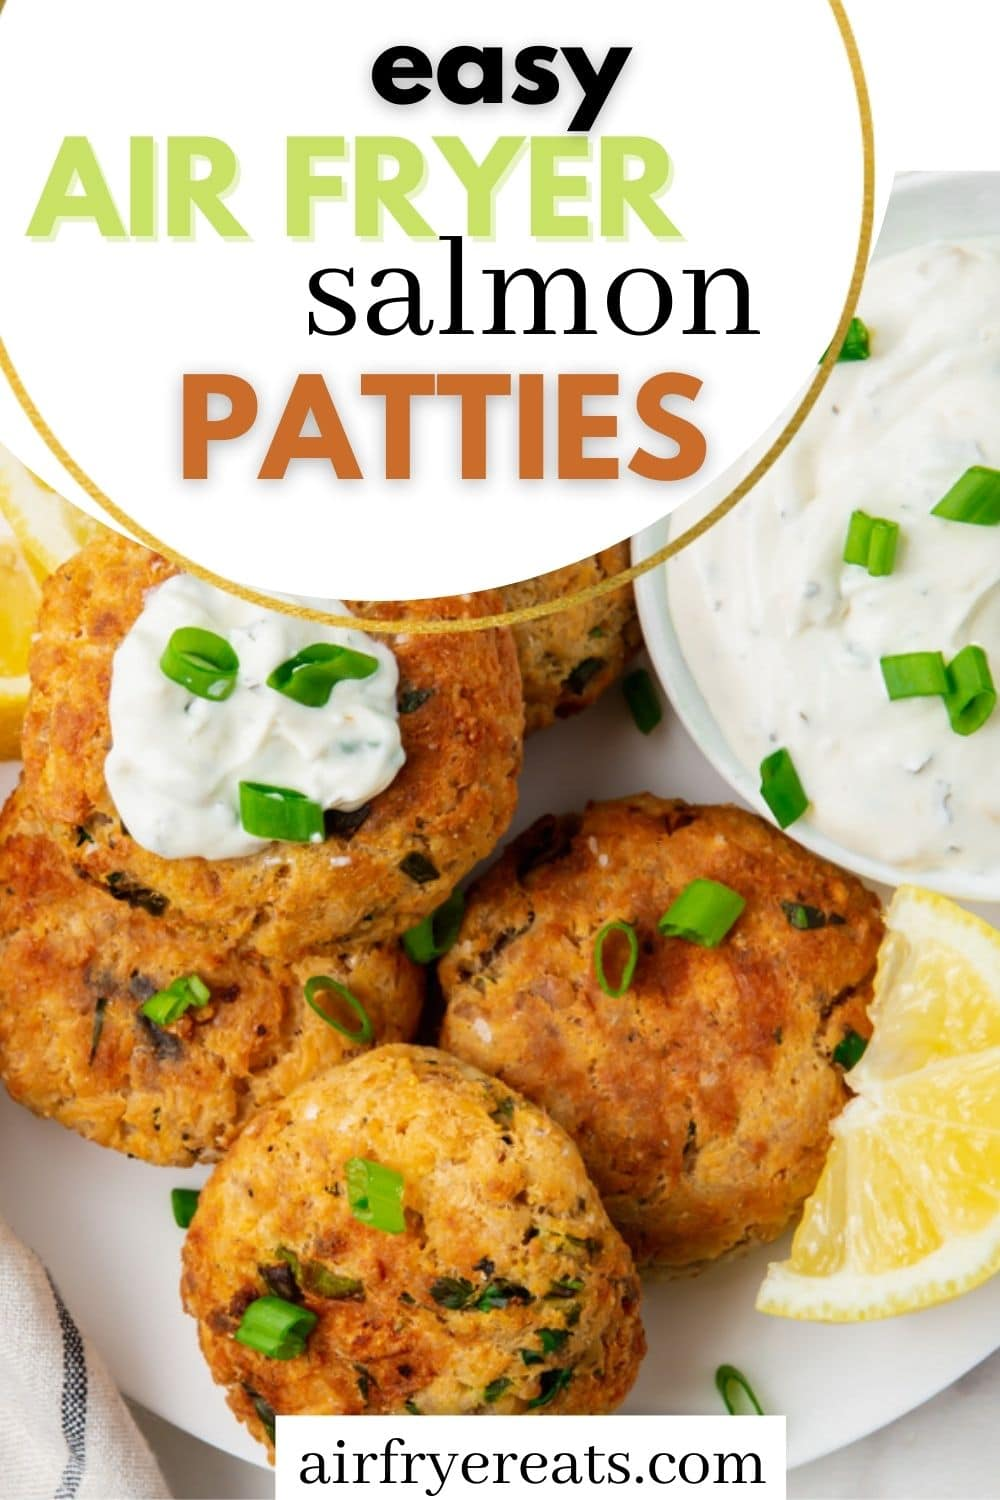 Delicious Air Fryer Salmon Patties are ready in just a few minutes! Crispy on the outside and packed with salmon and the perfect seasonings, you'll love this recipe for simple dinners or lunches. #salmonpatties via @vegetarianmamma